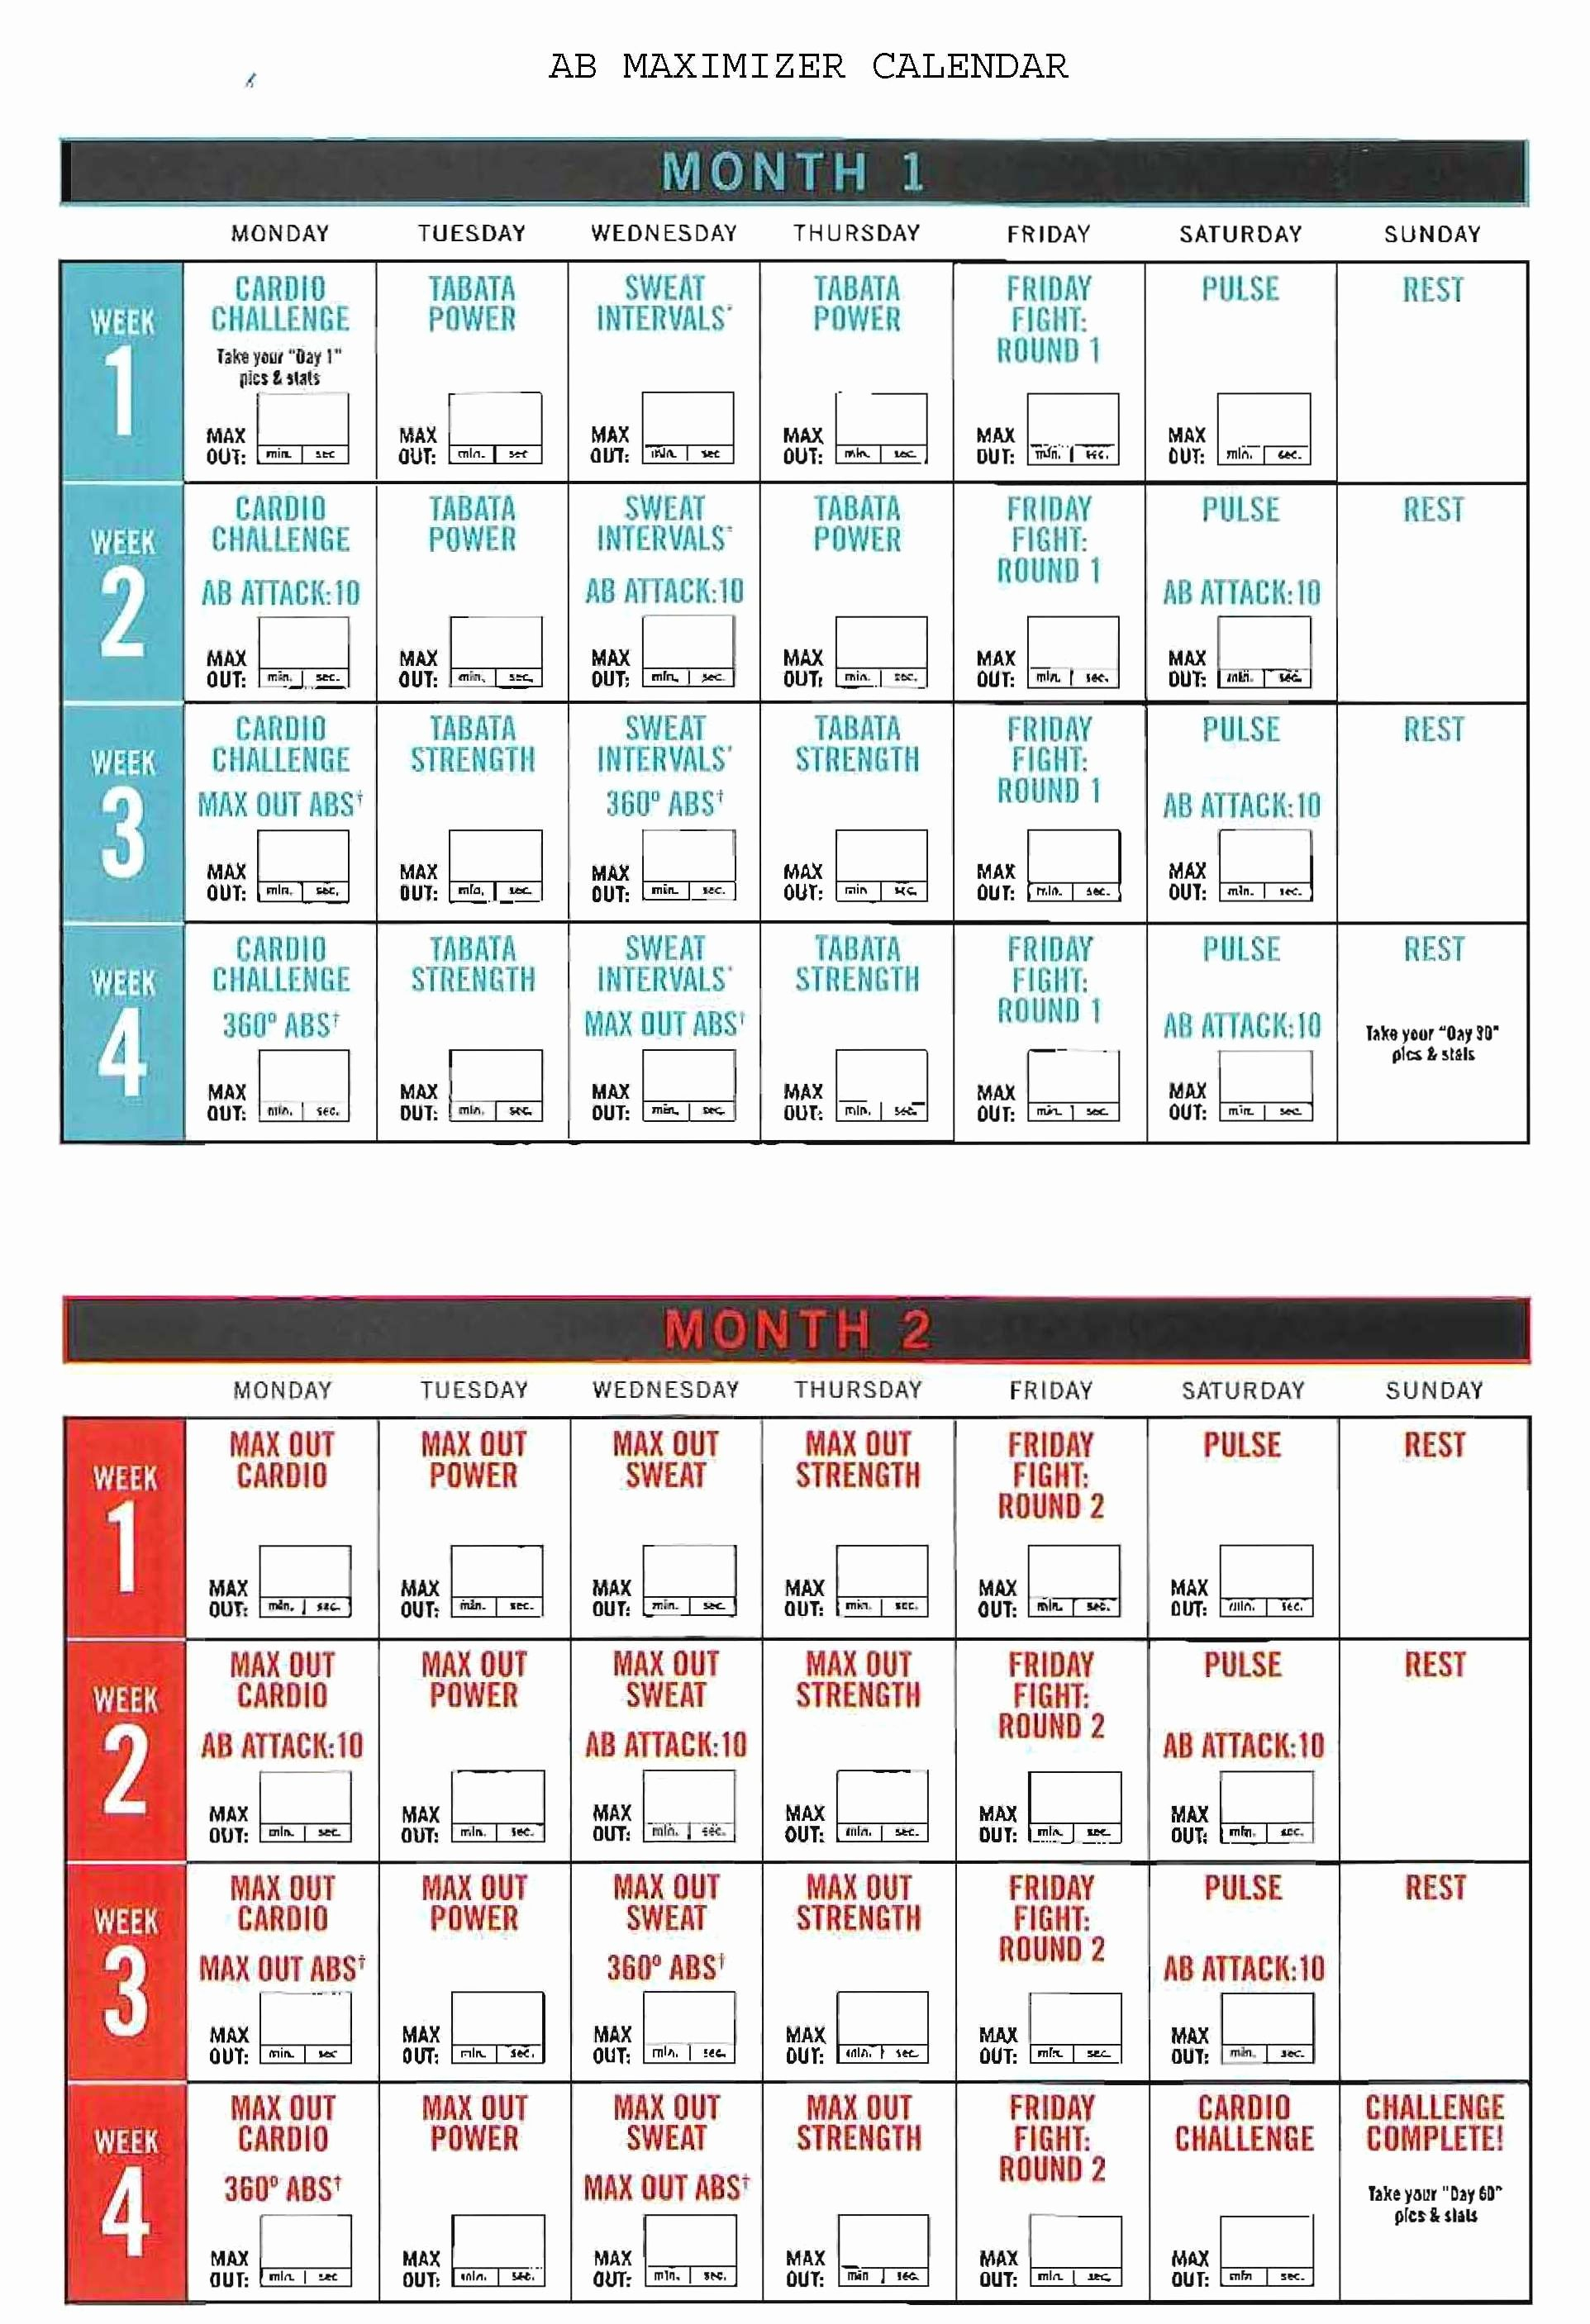 Lovely 35 Illustration Insanity Printable Calendar Pdf Month with regard to Insanity Max 30 Schedule Pdf